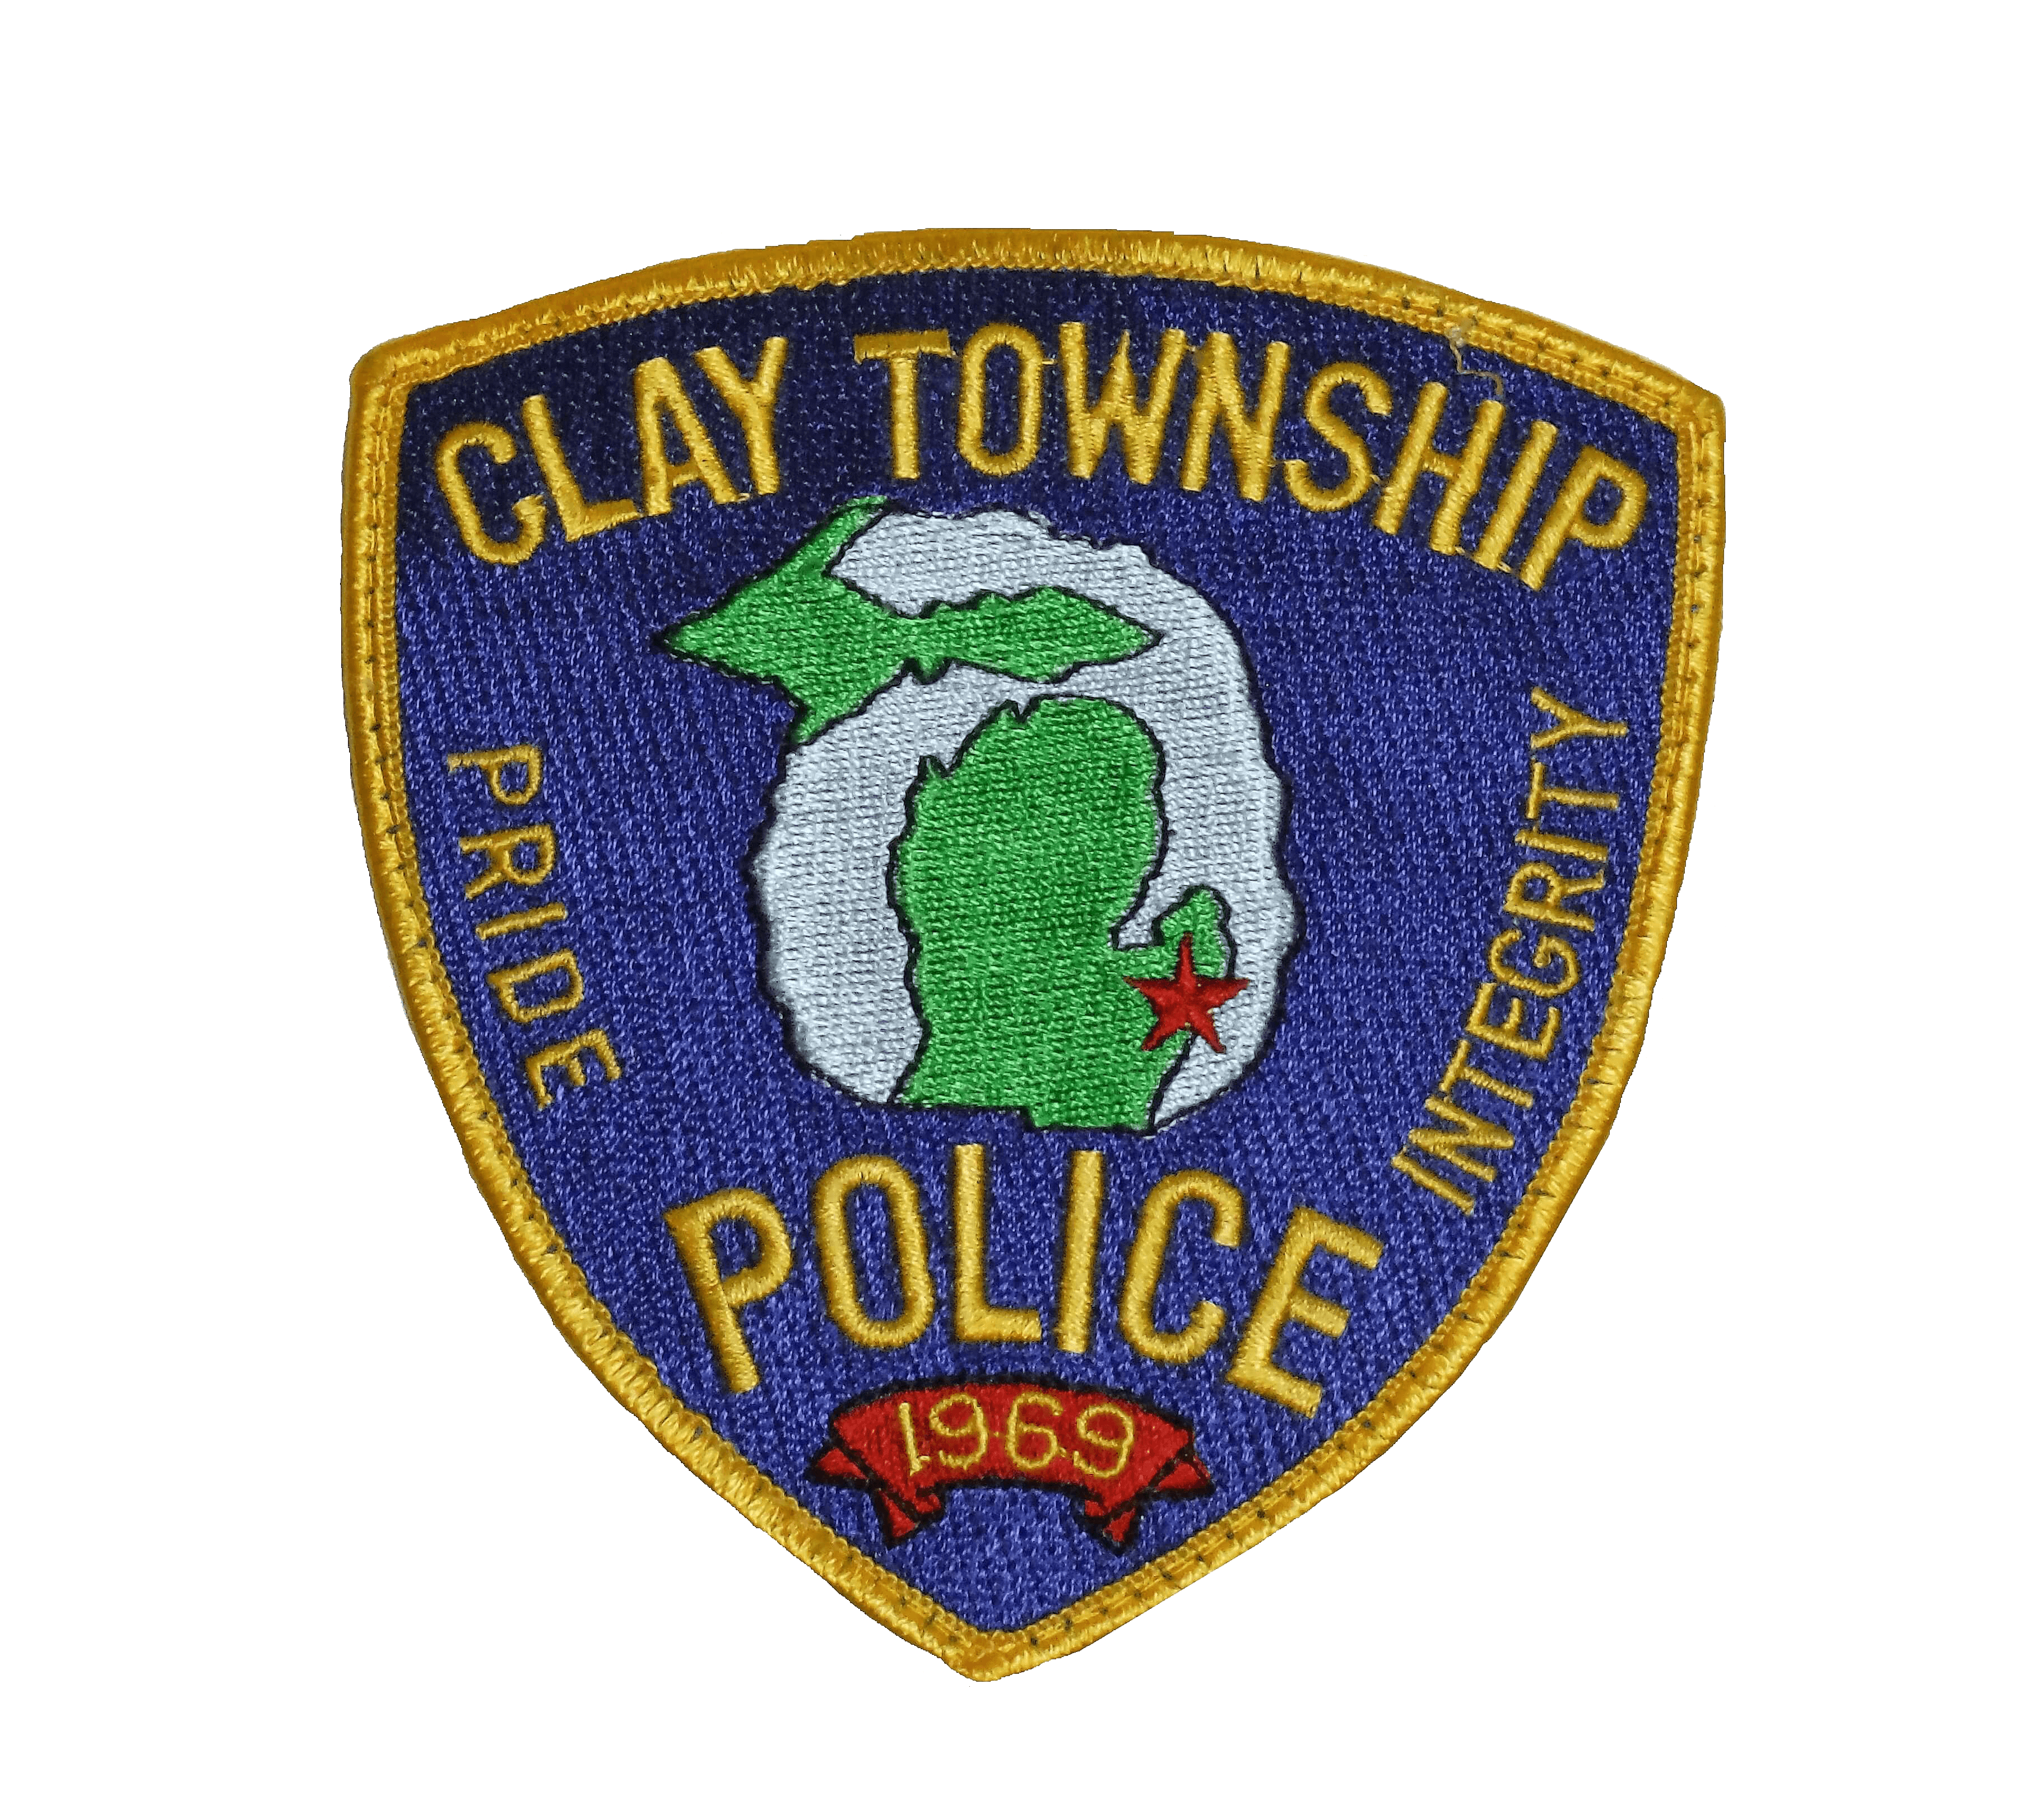 Clay Township Police